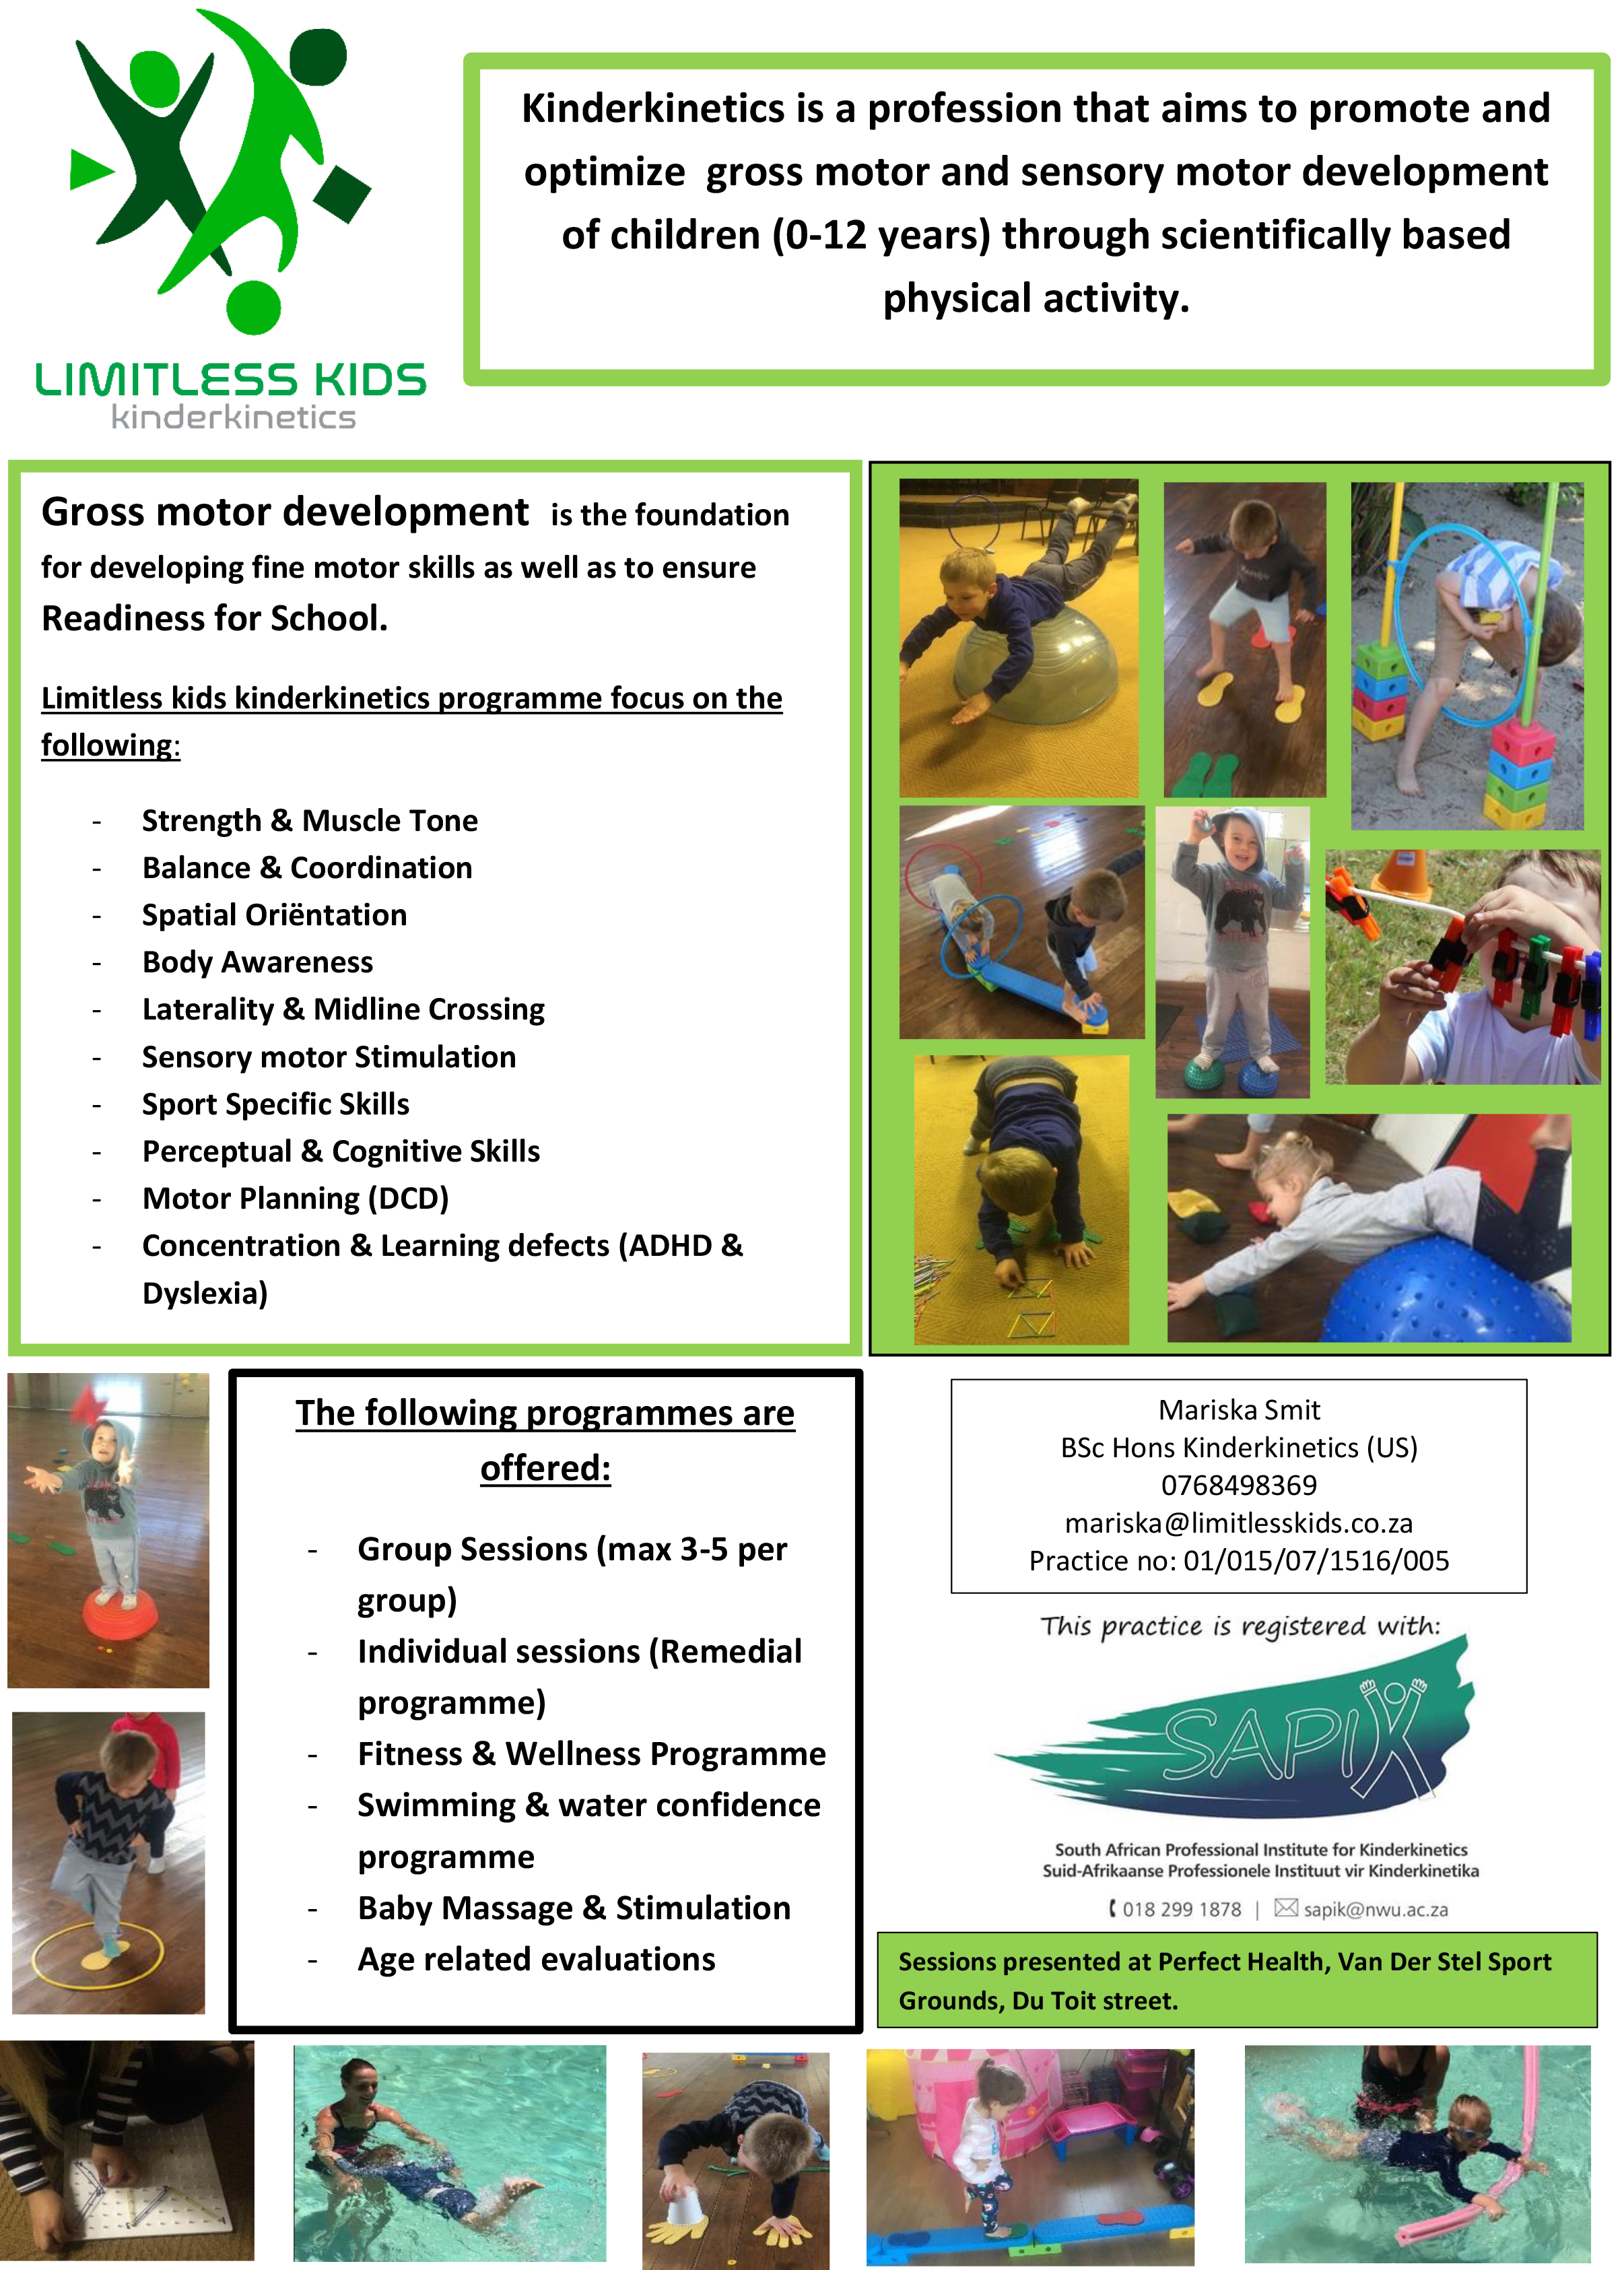 Limitless Kids Kinderkinetics pamphlet